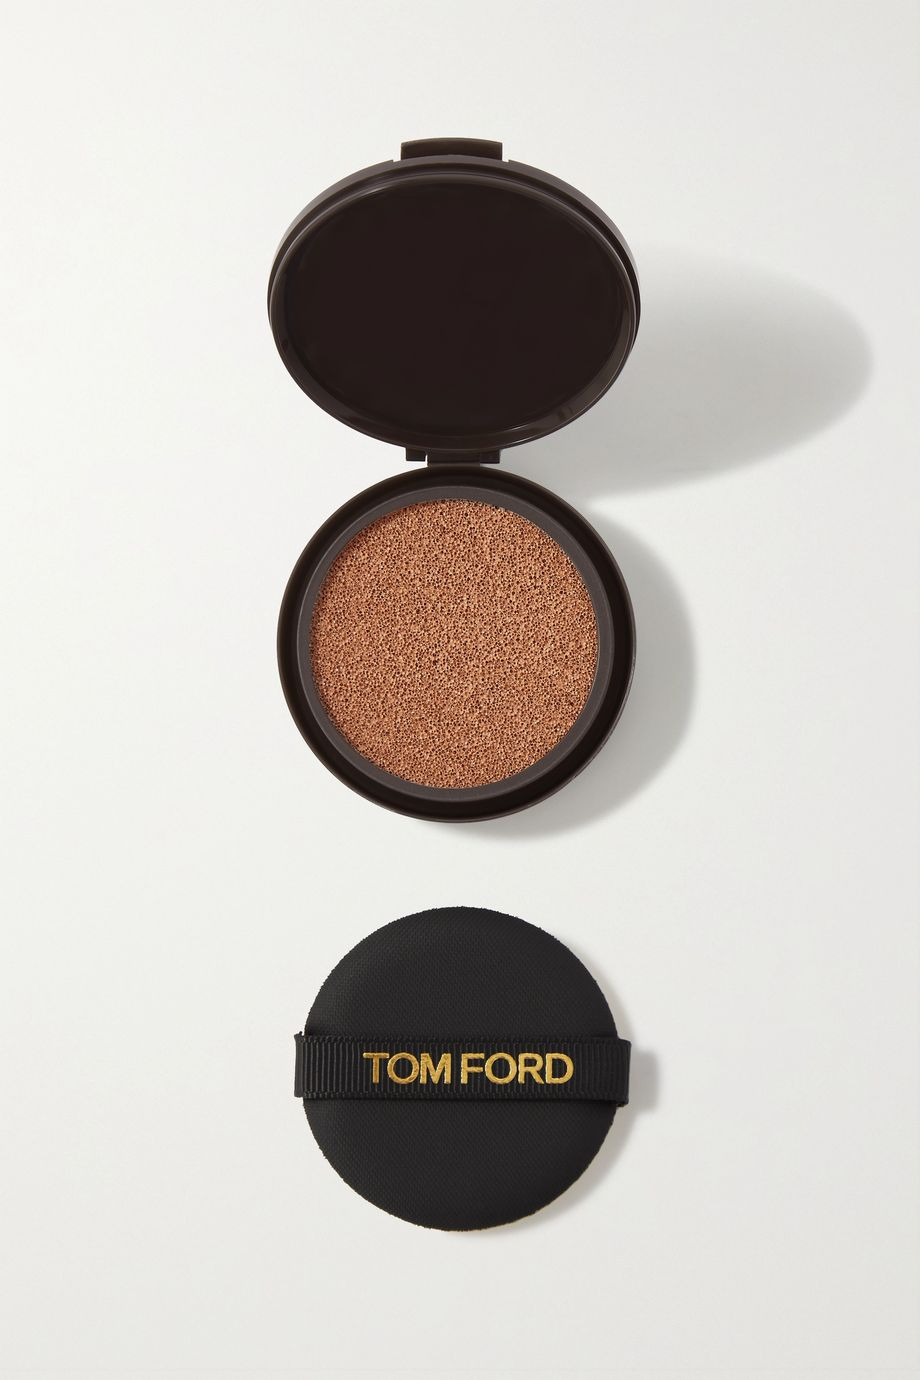 TOM FORD BEAUTY Traceless Touch Cushion Foundation Refill SPF45 - 6.0 Natural, 12g